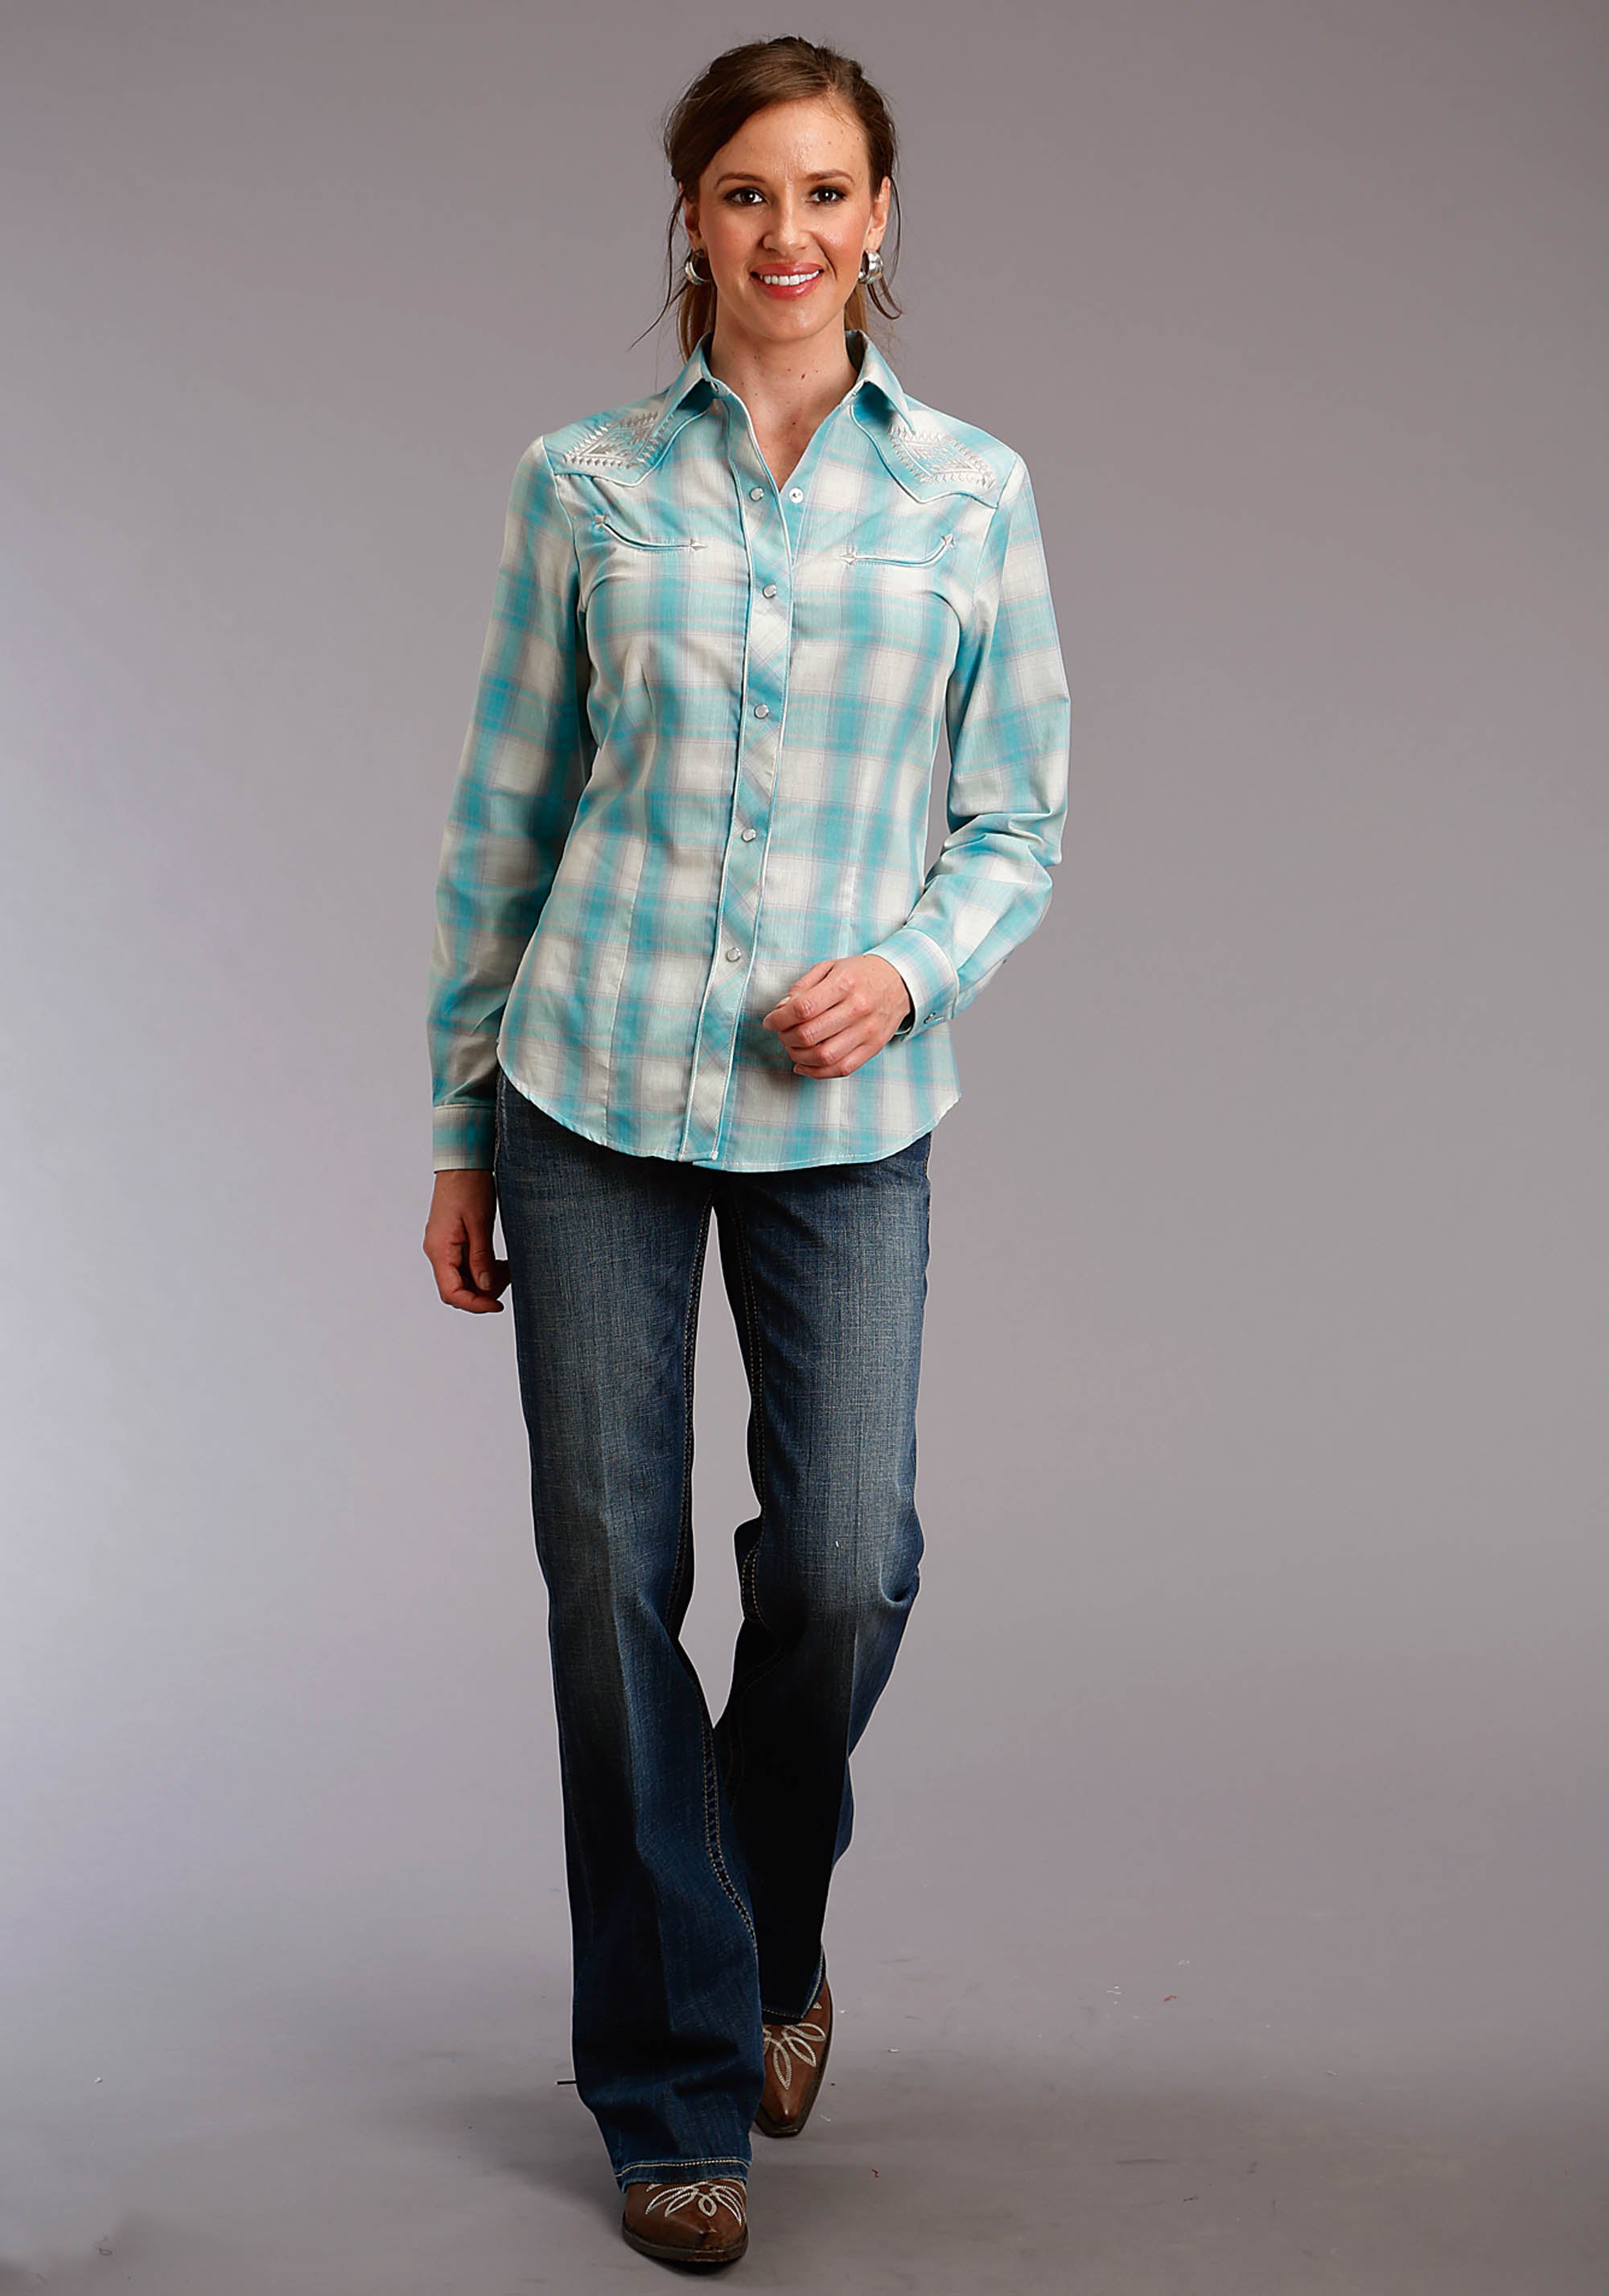 ROPER WOMENS BLUE 2817 TURQUOISE & CREAM PLAID KARMAN SPECIAL STYLES LONG SLEEVE